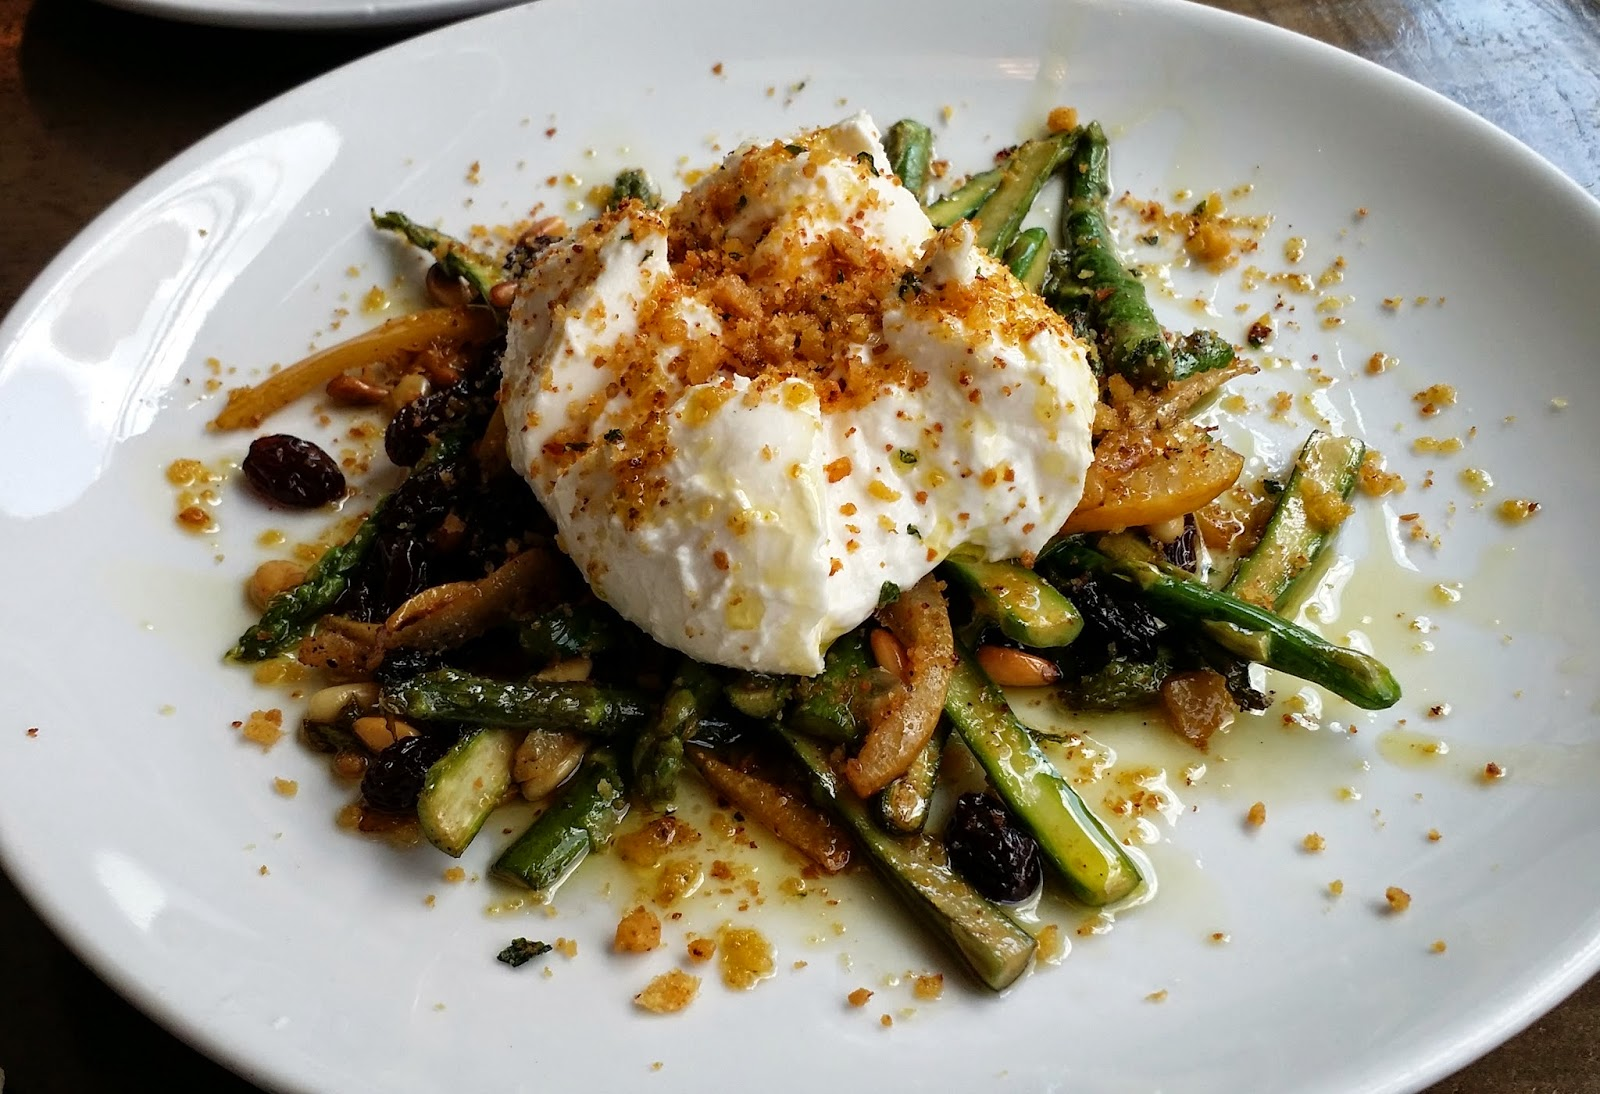 of cold burrata cheese over warm asparagus, pine nuts, golden raisins ...